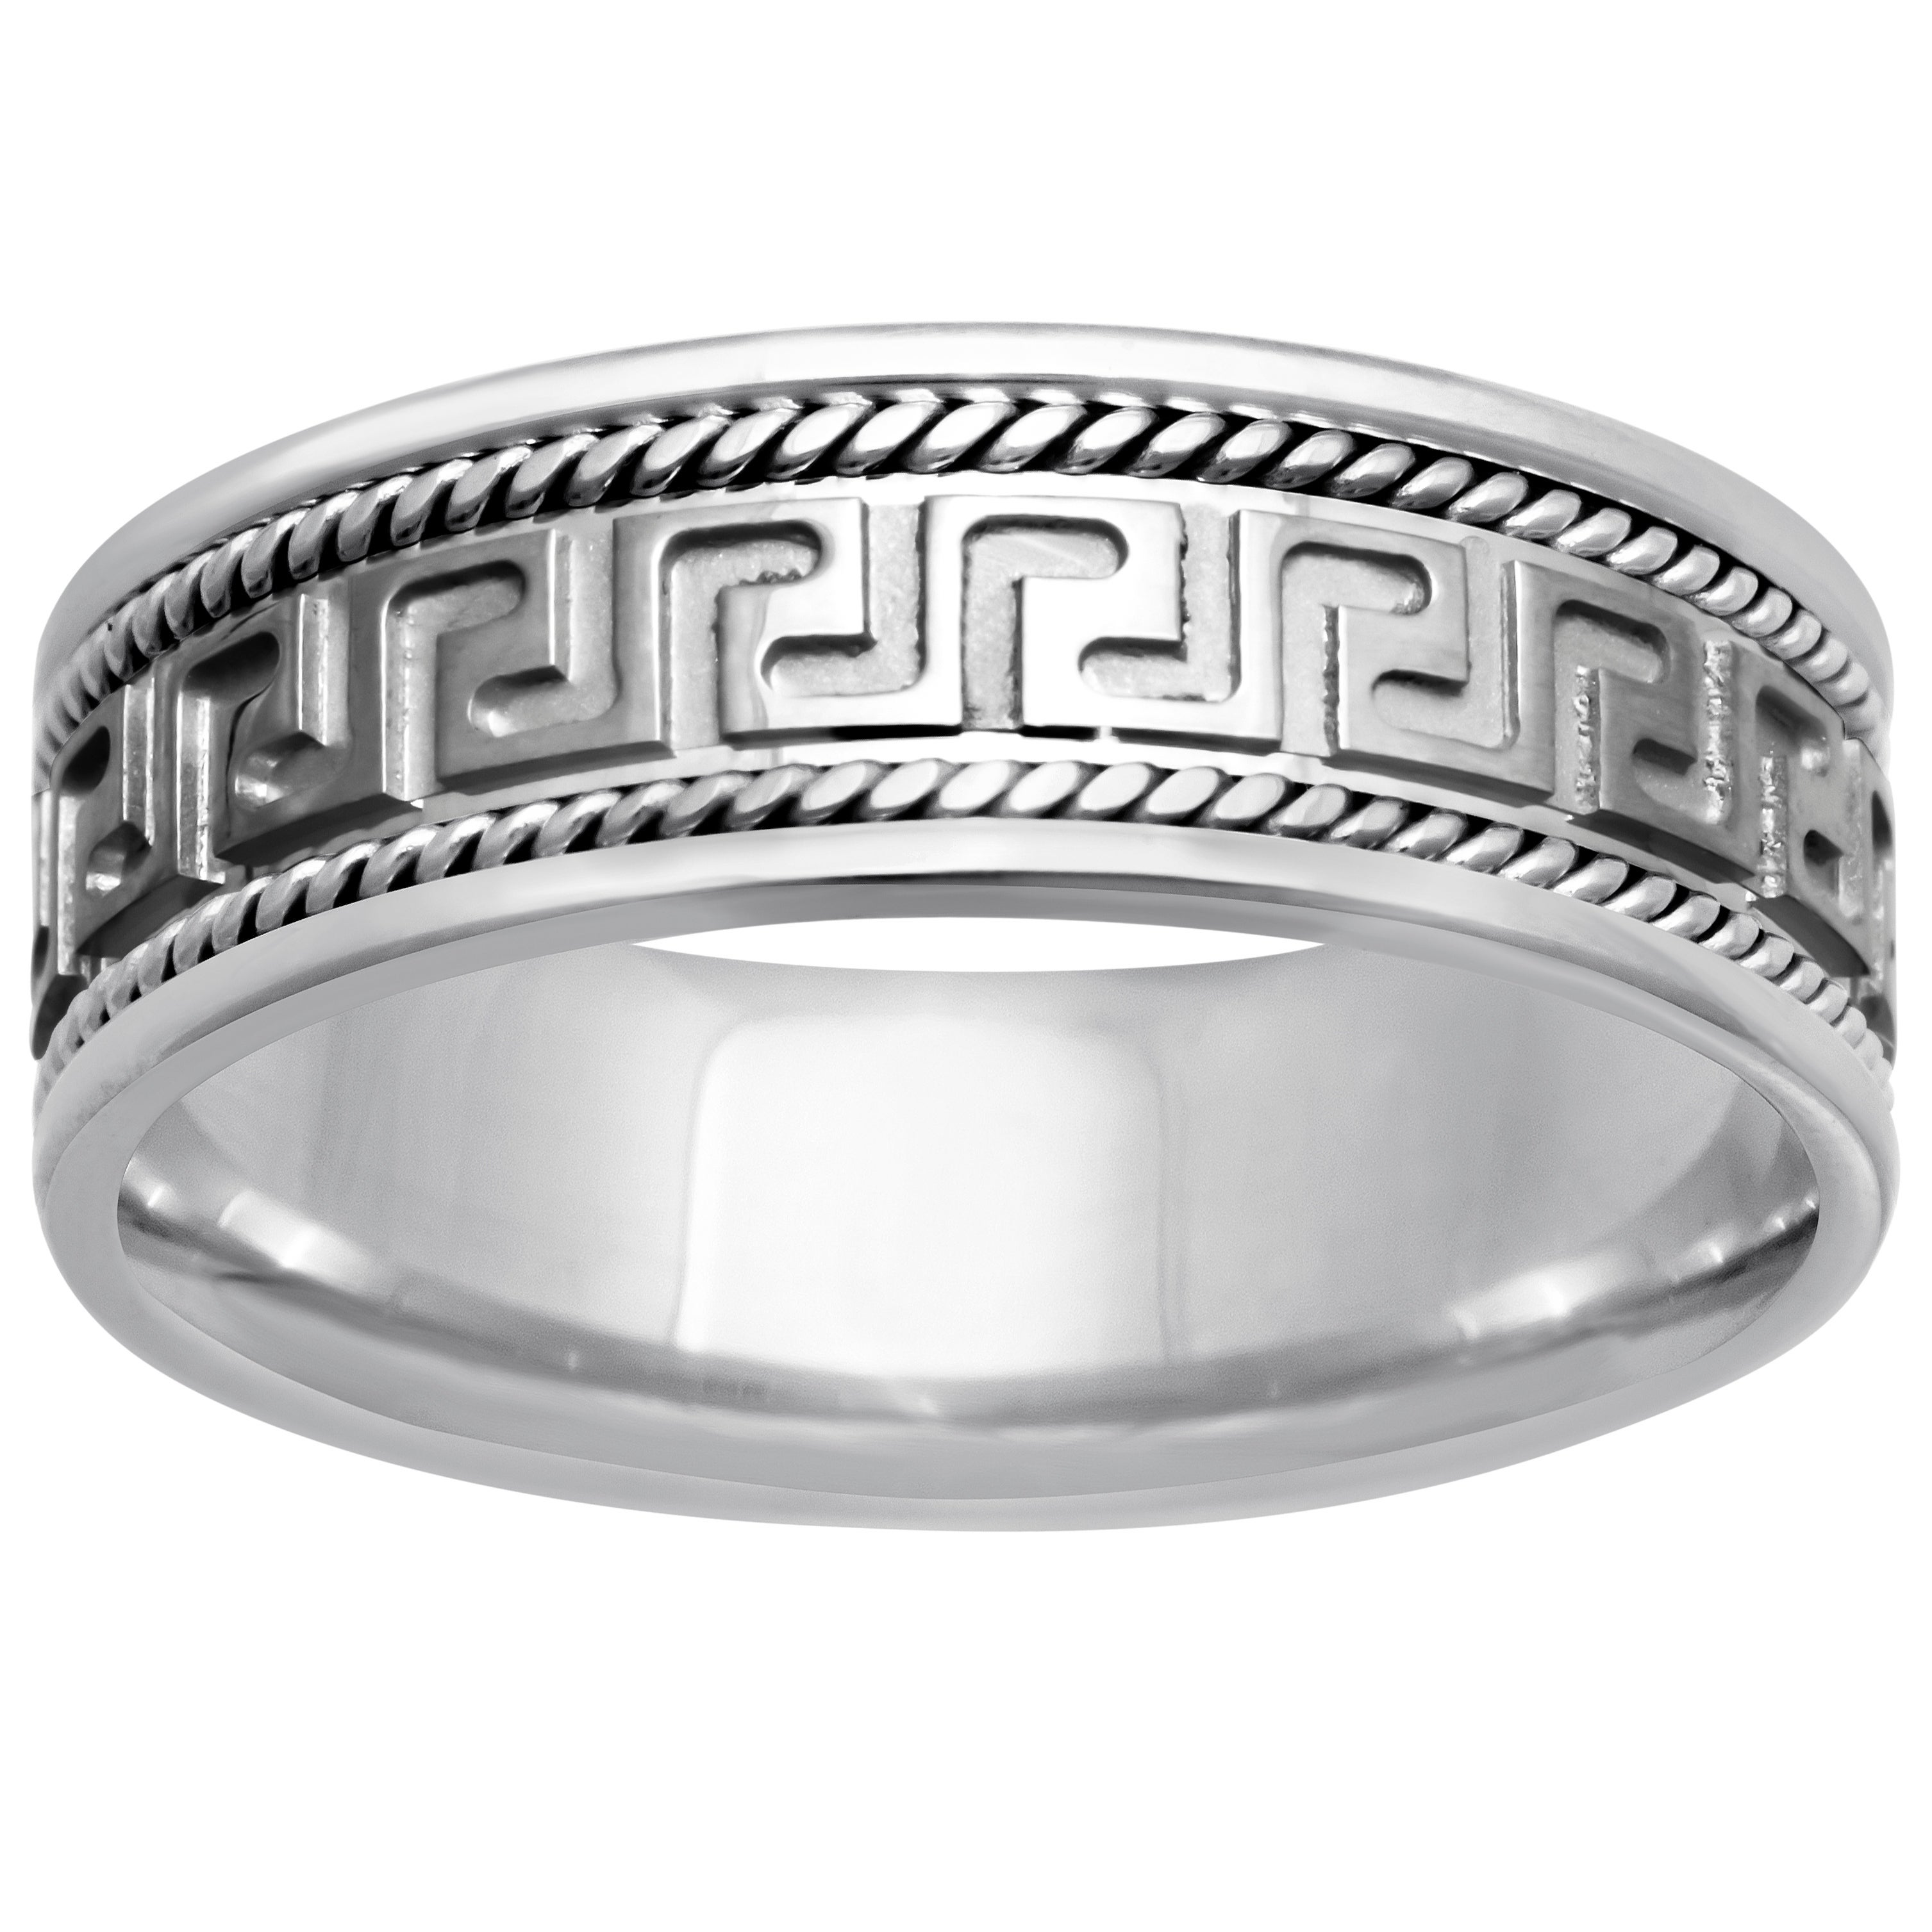 Stainless Steel Black 2 Color Greek Key Comfort Fit Flat Band Ring